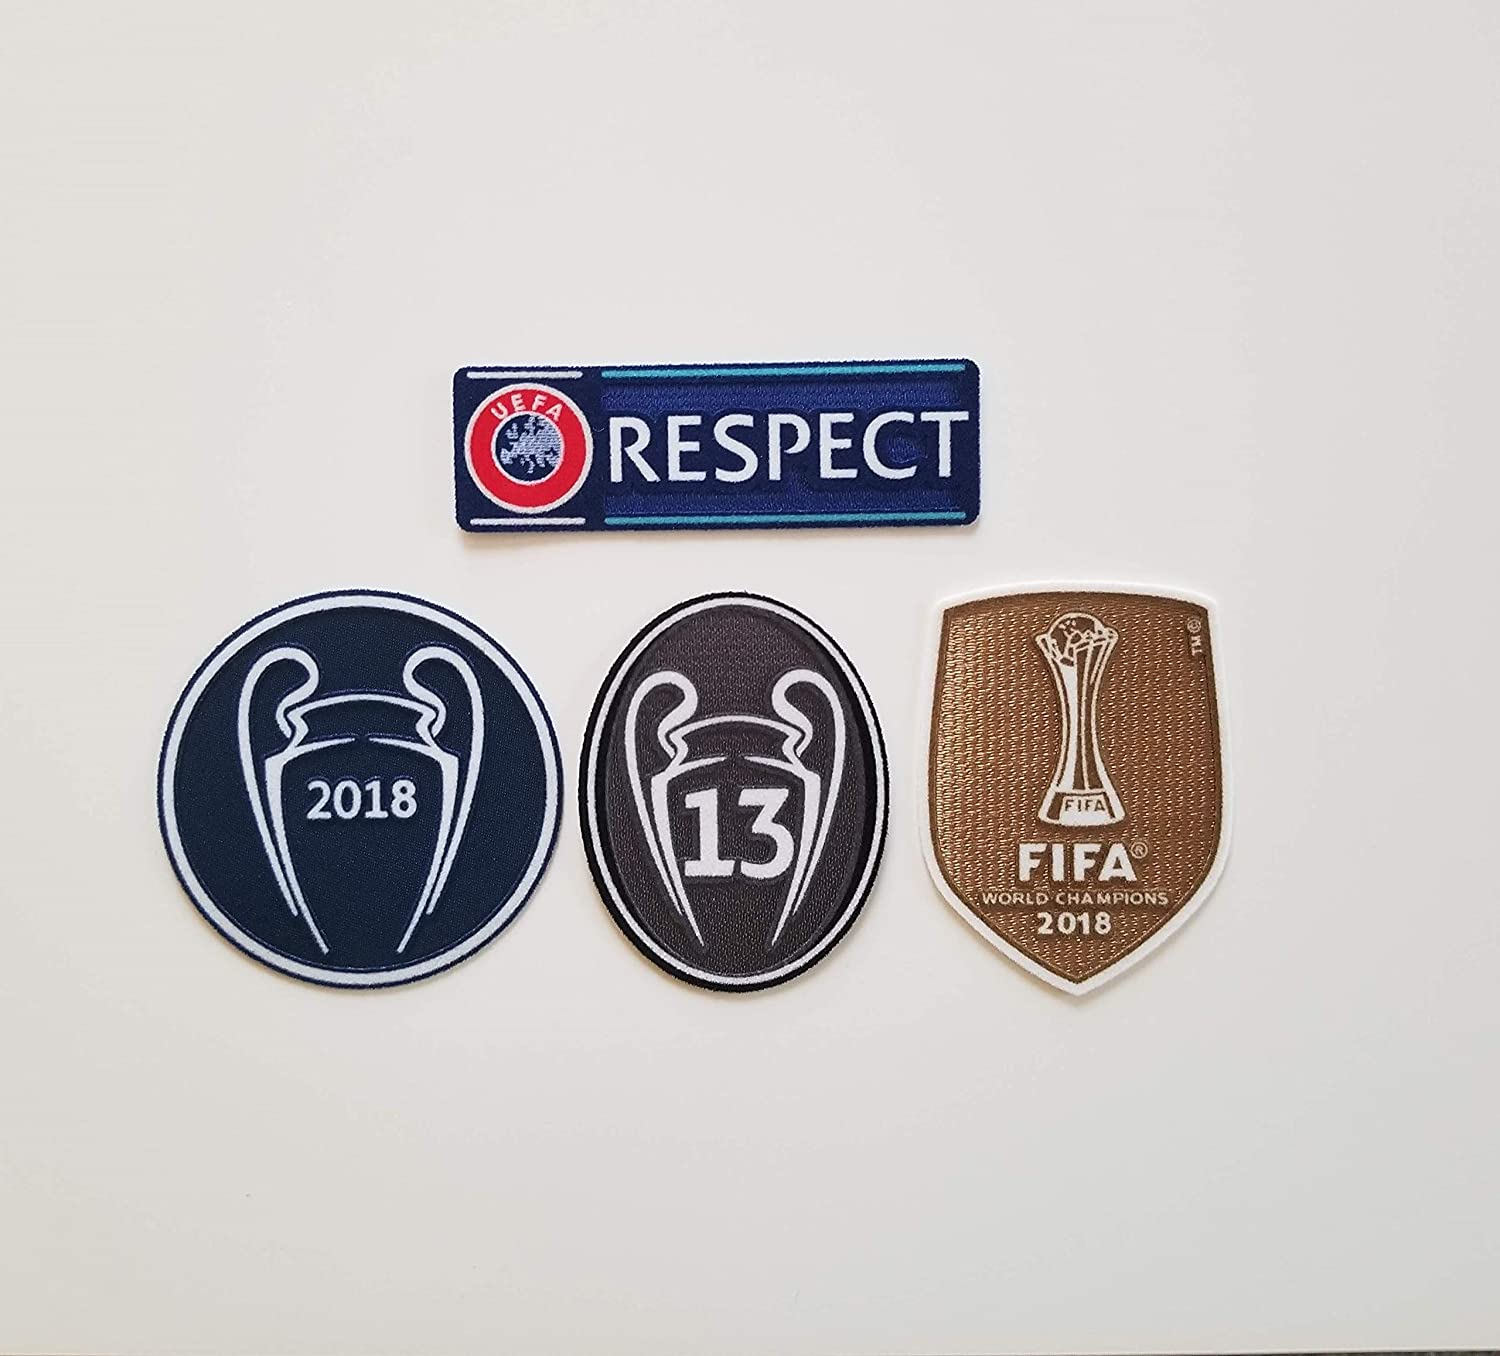 2018 UEFA Champions League Real Madrid Set Soccer Patch 13 Trophy Respect Bale Benzema Hazard